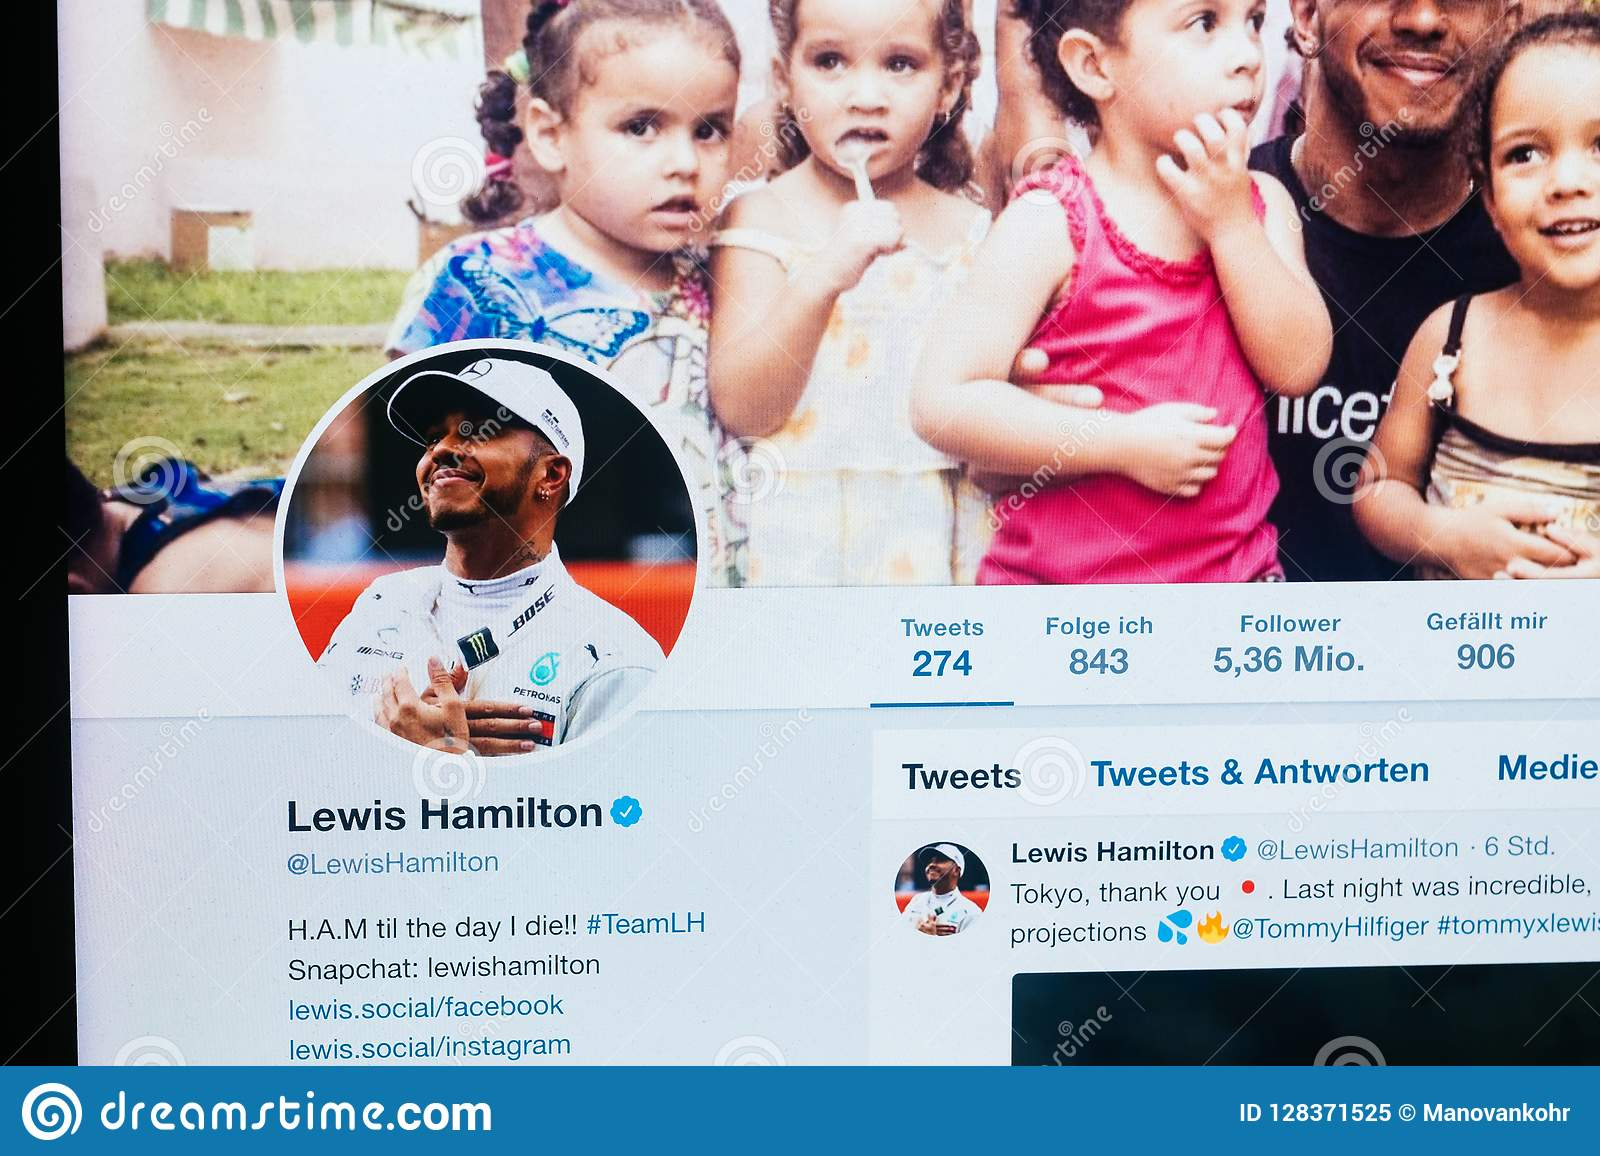 Twitter profile of Lewis Hamilton from October 2018